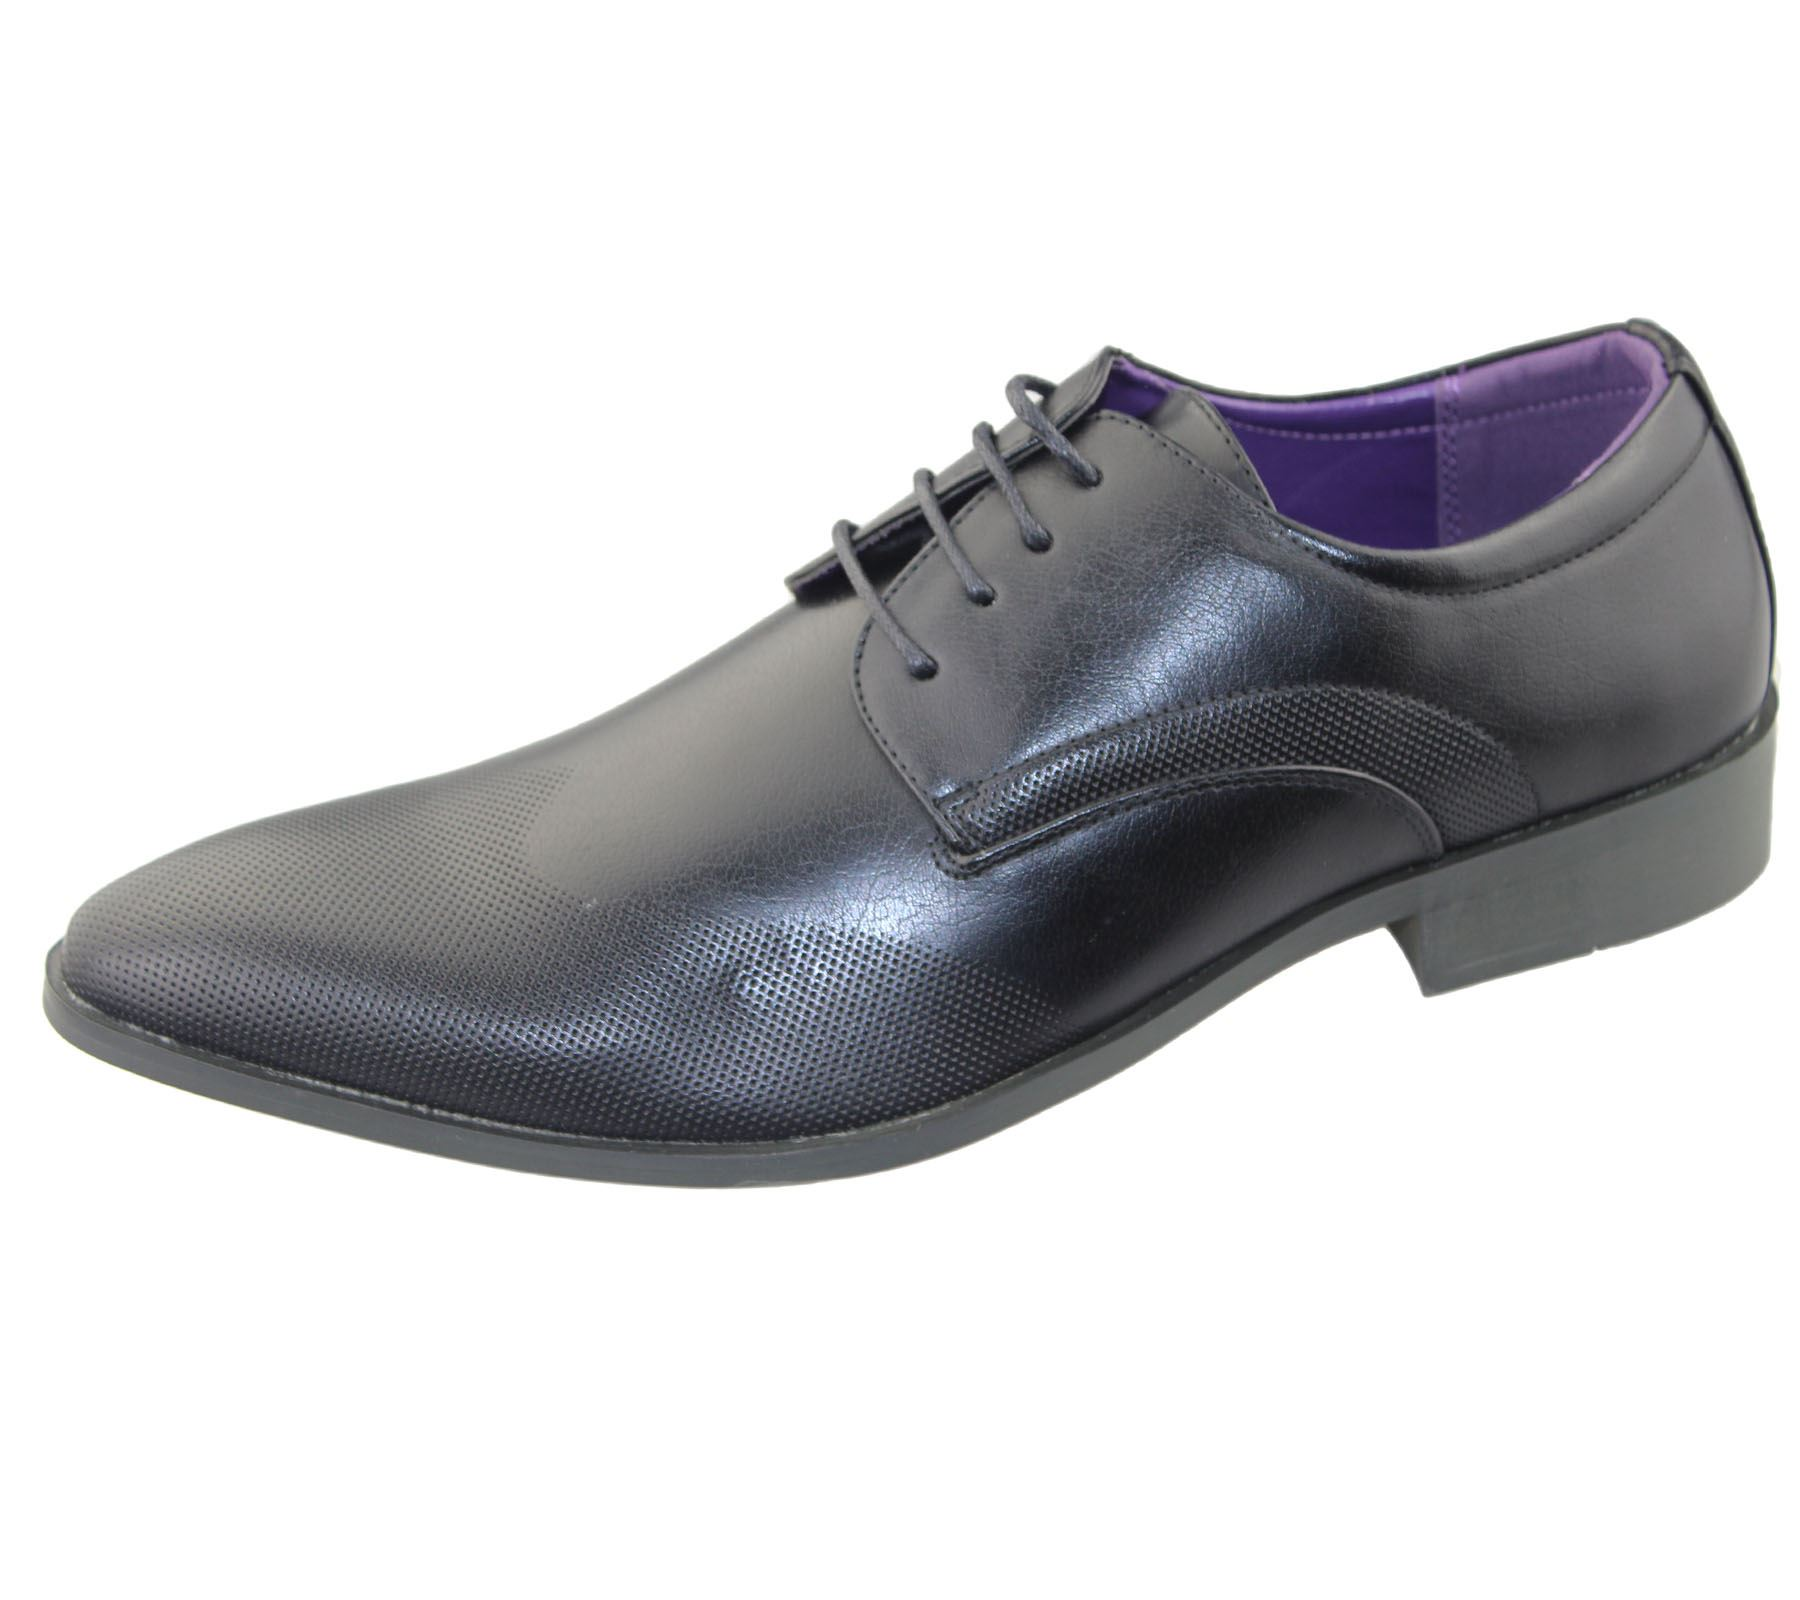 Mens Office Lace Up Brogues Shoes Wedding Casual Formal Smart Dress Shoes New